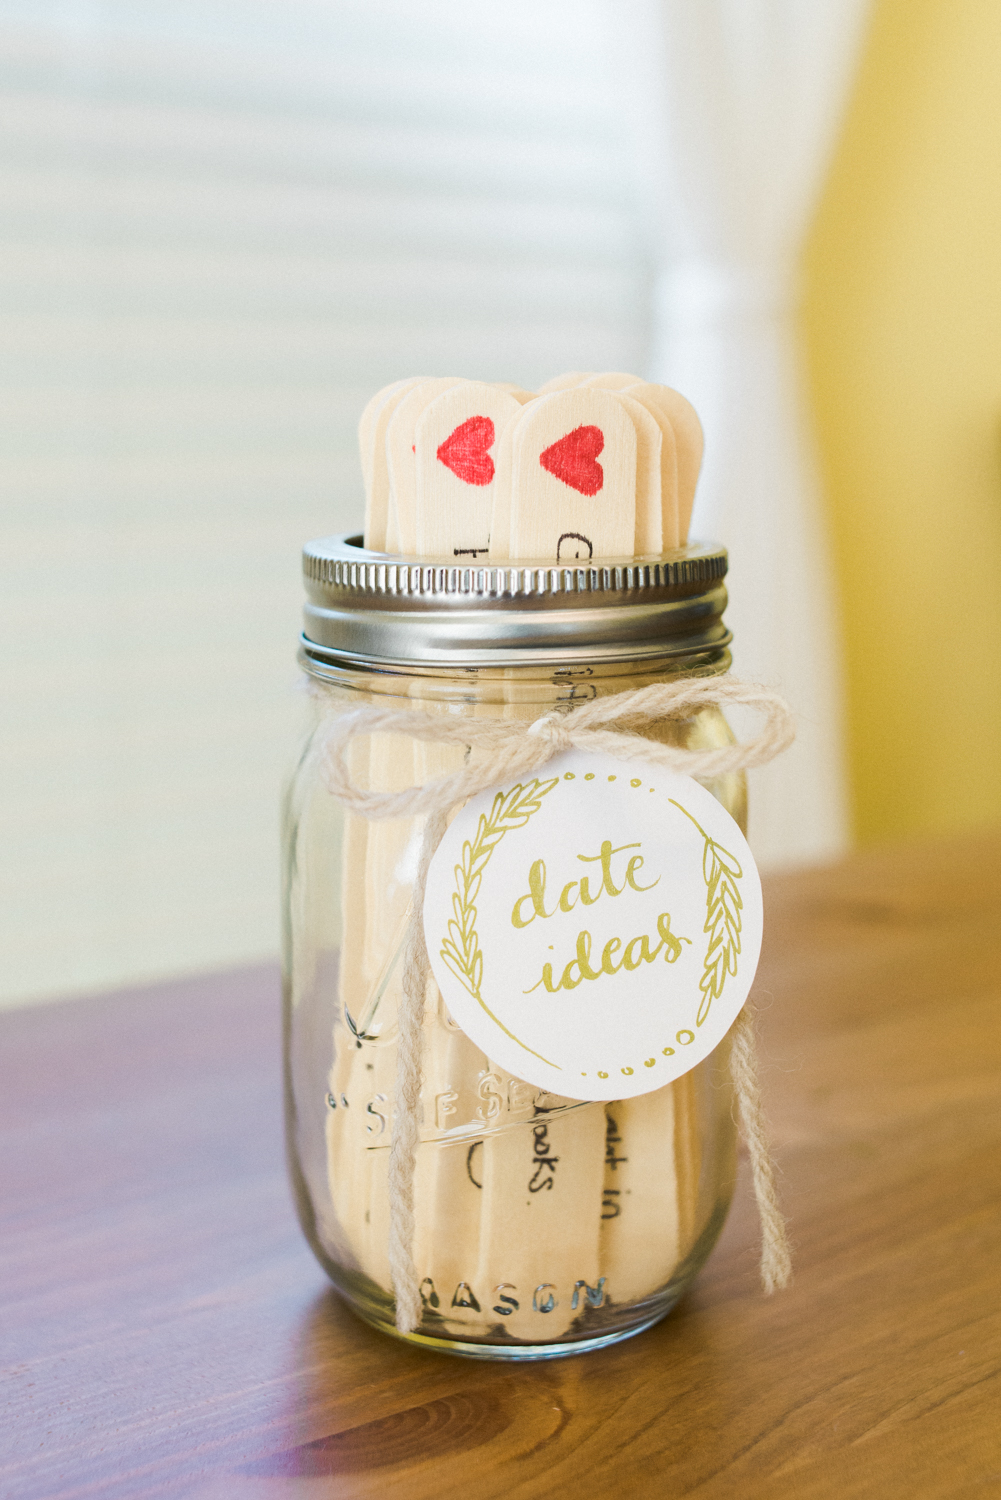 valentines-day-2015-date-night-ideas-mason-jar-portland-oregon-shelley-marie-photo-3.jpg